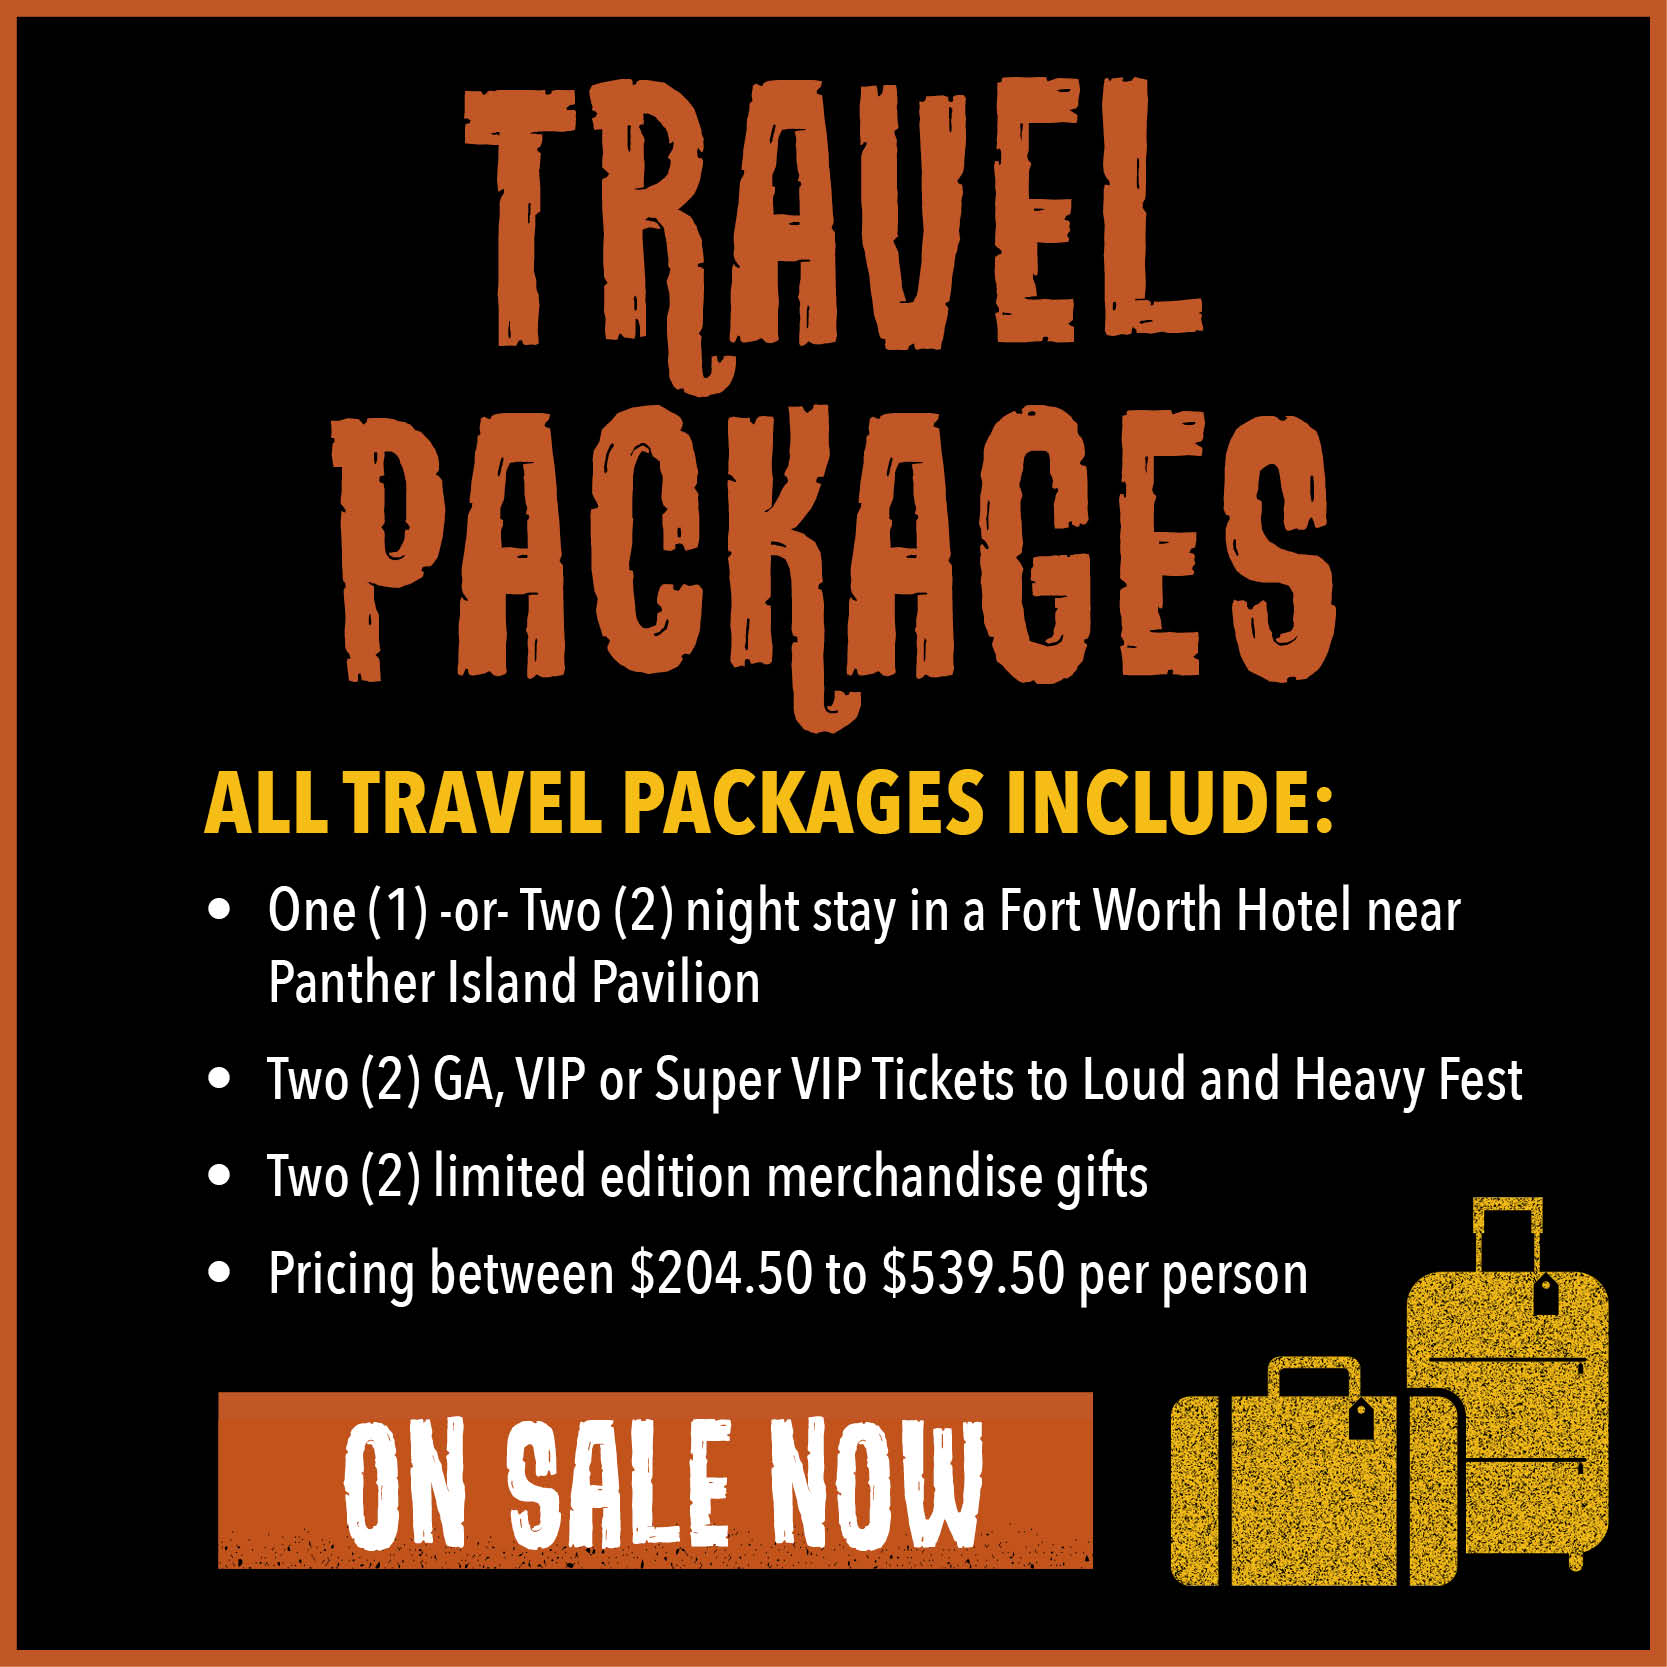 Travel packages on-sale June 15th